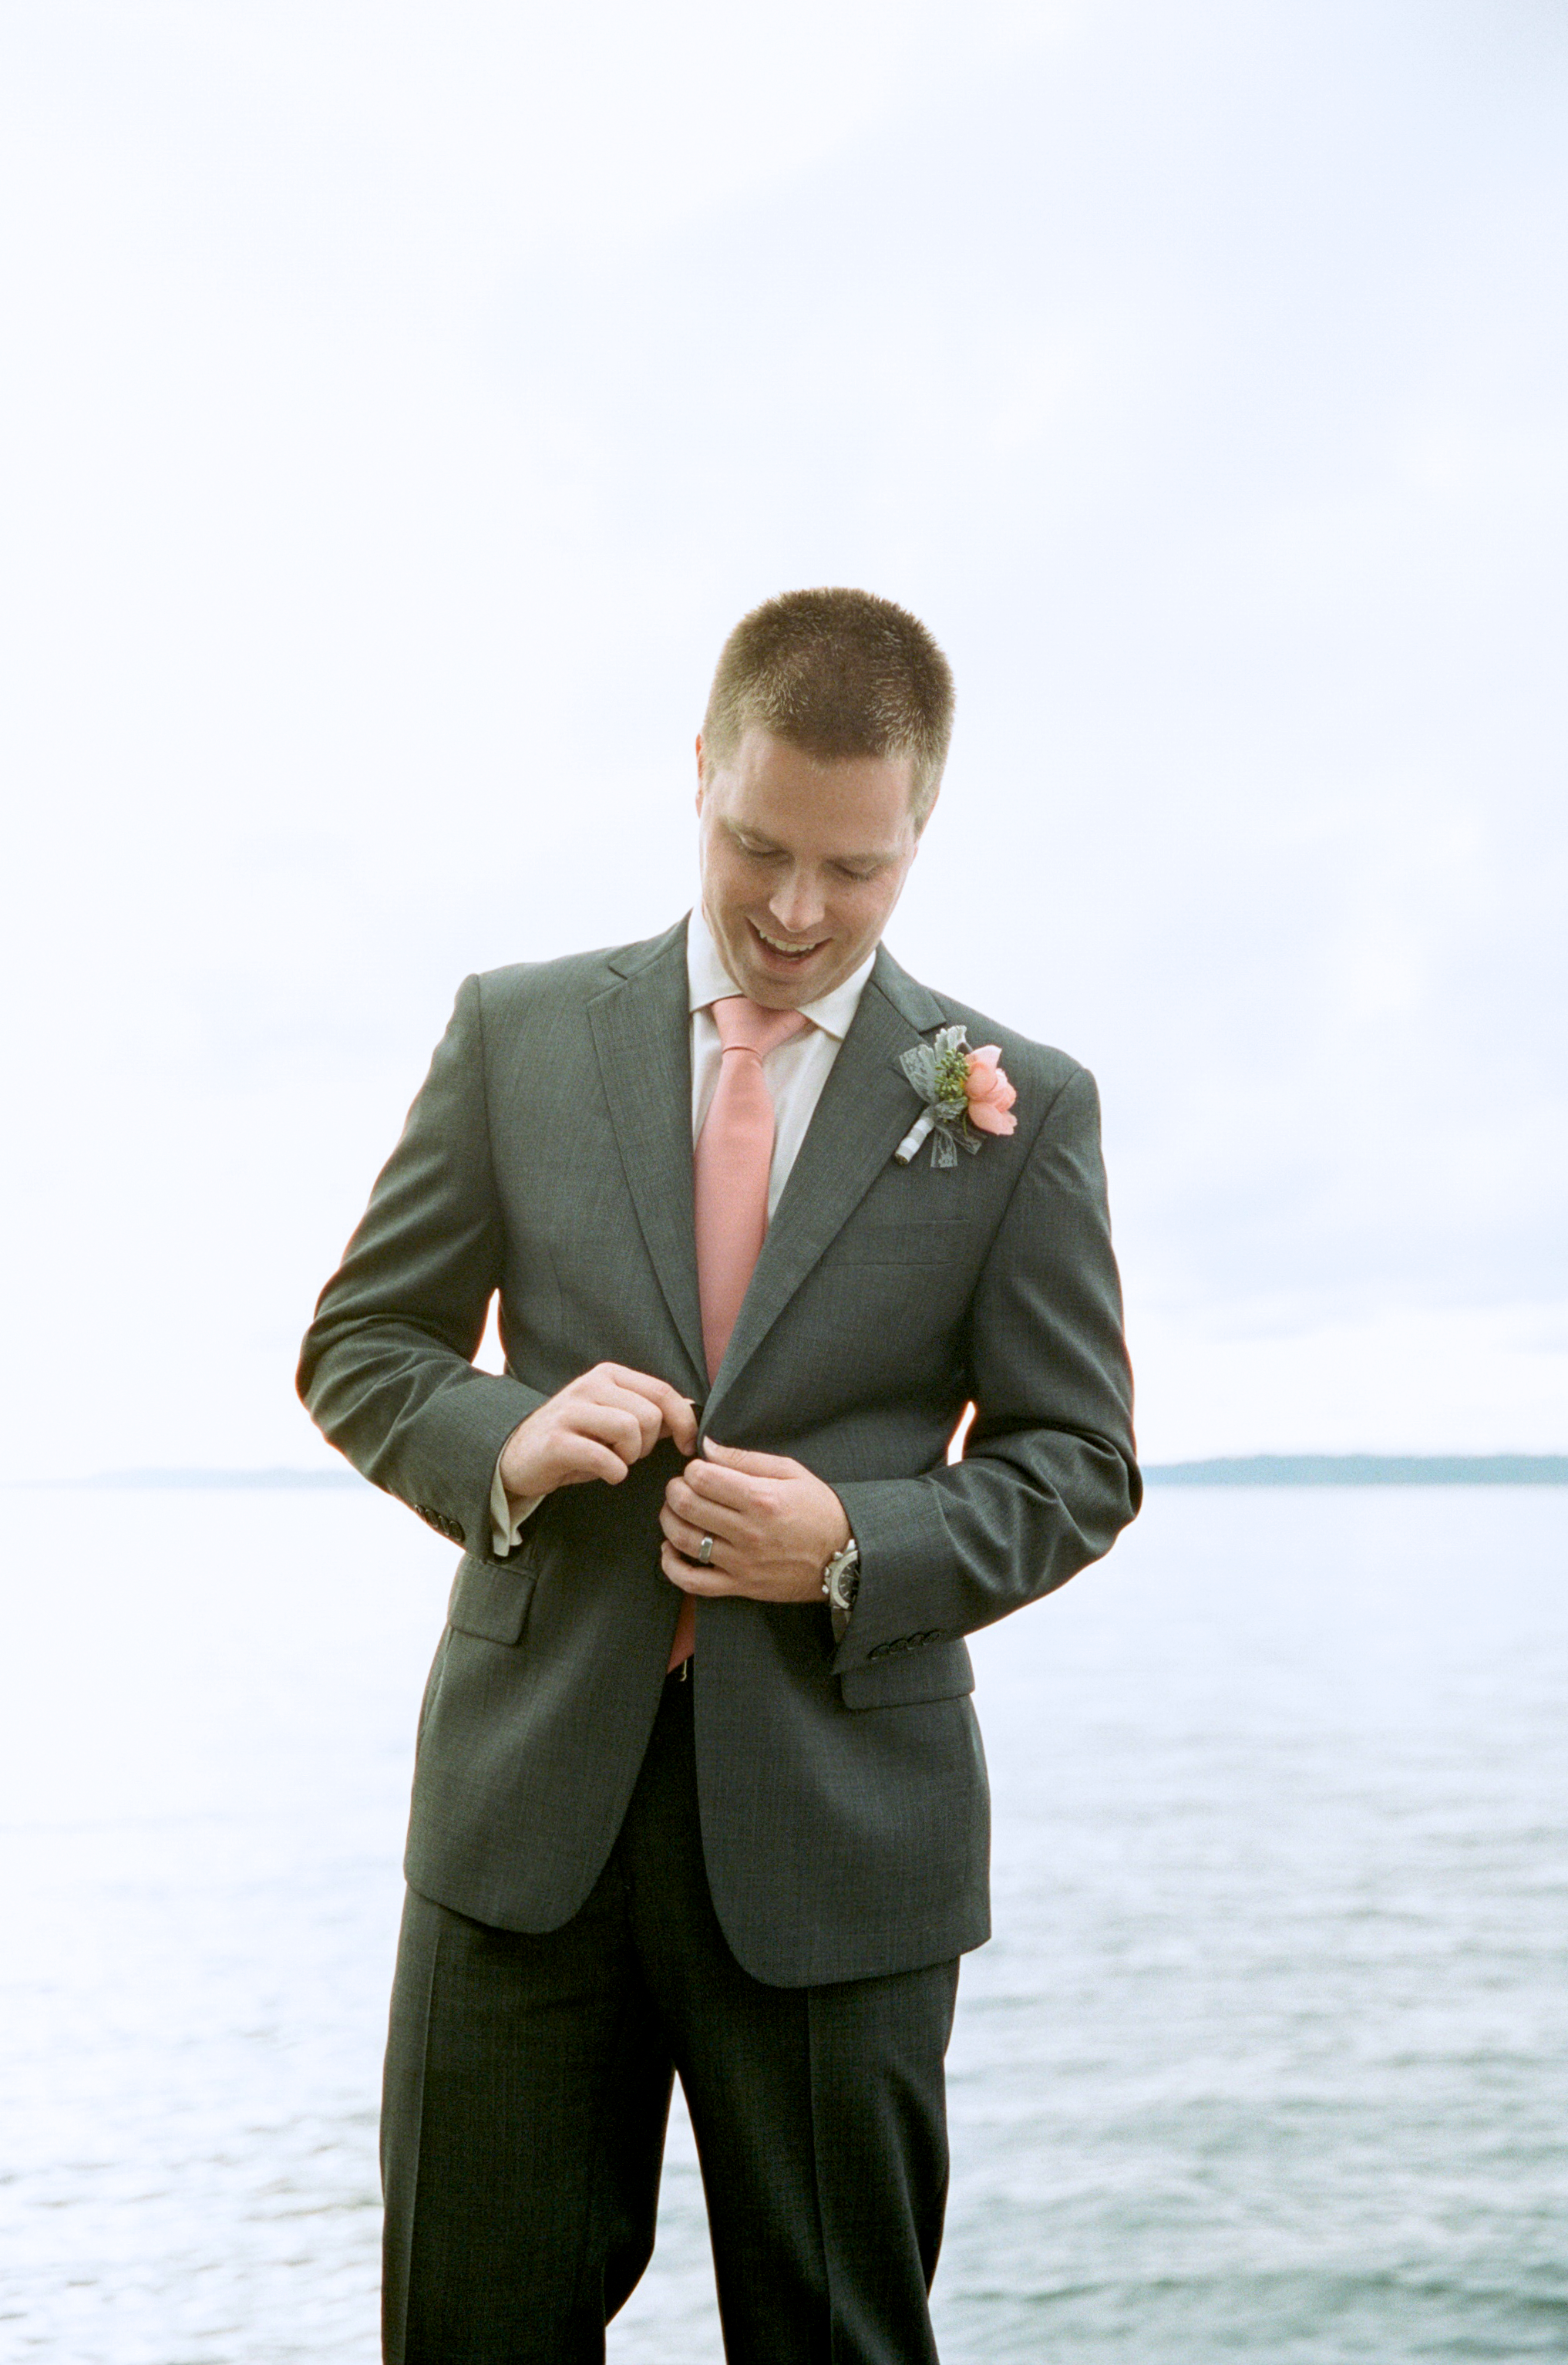 seattle wedding photographer photography rachael kruse ocean pudget sound the hall at fauntleroy film photographer engagement west seattle groom water